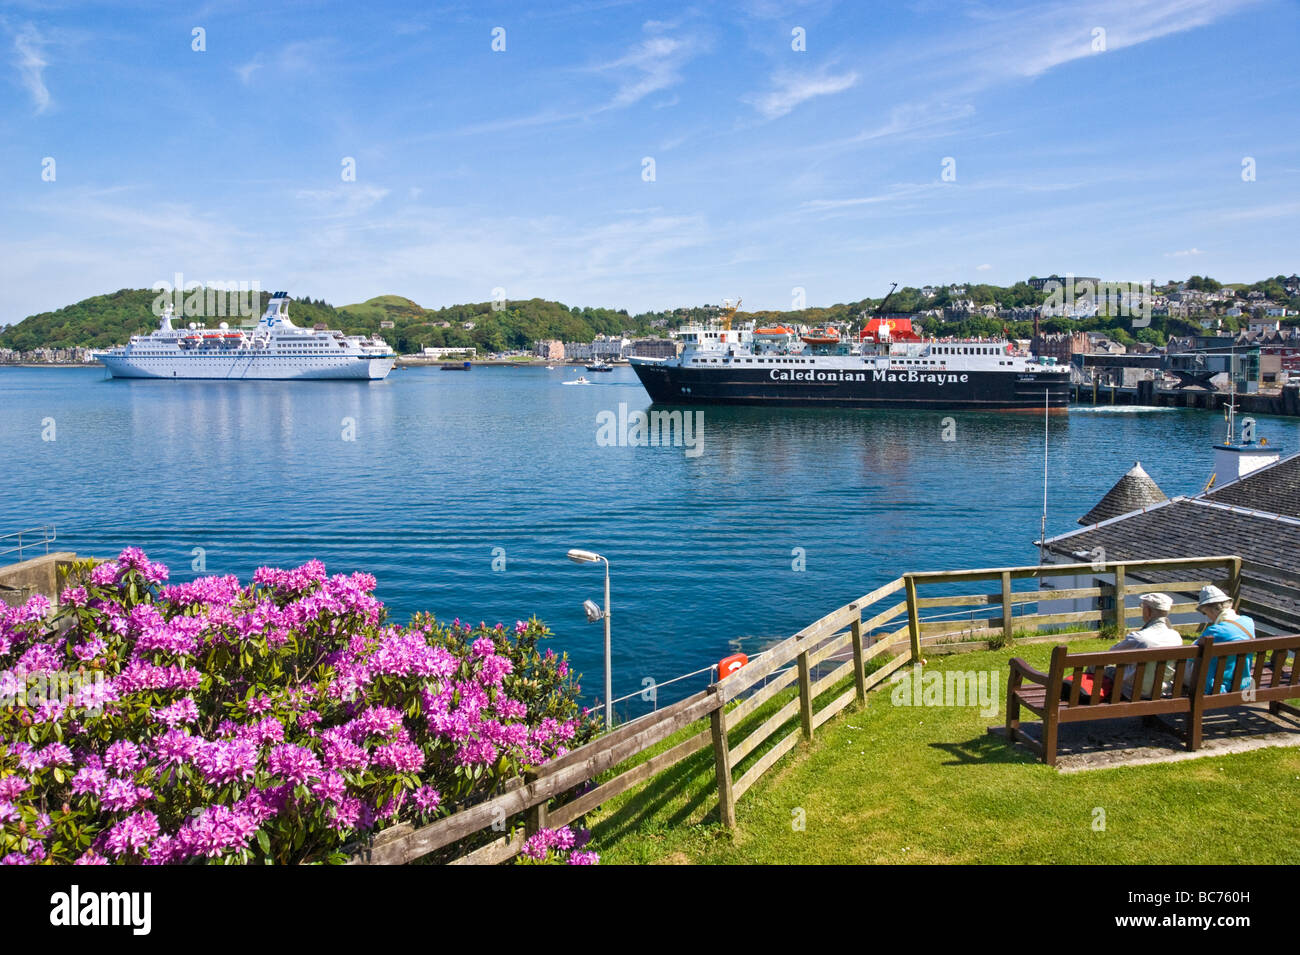 Calmac car ferry Isle of Mull leaving Oban en route to Mull with cruise ship Astor moored in the harbour. - Stock Image